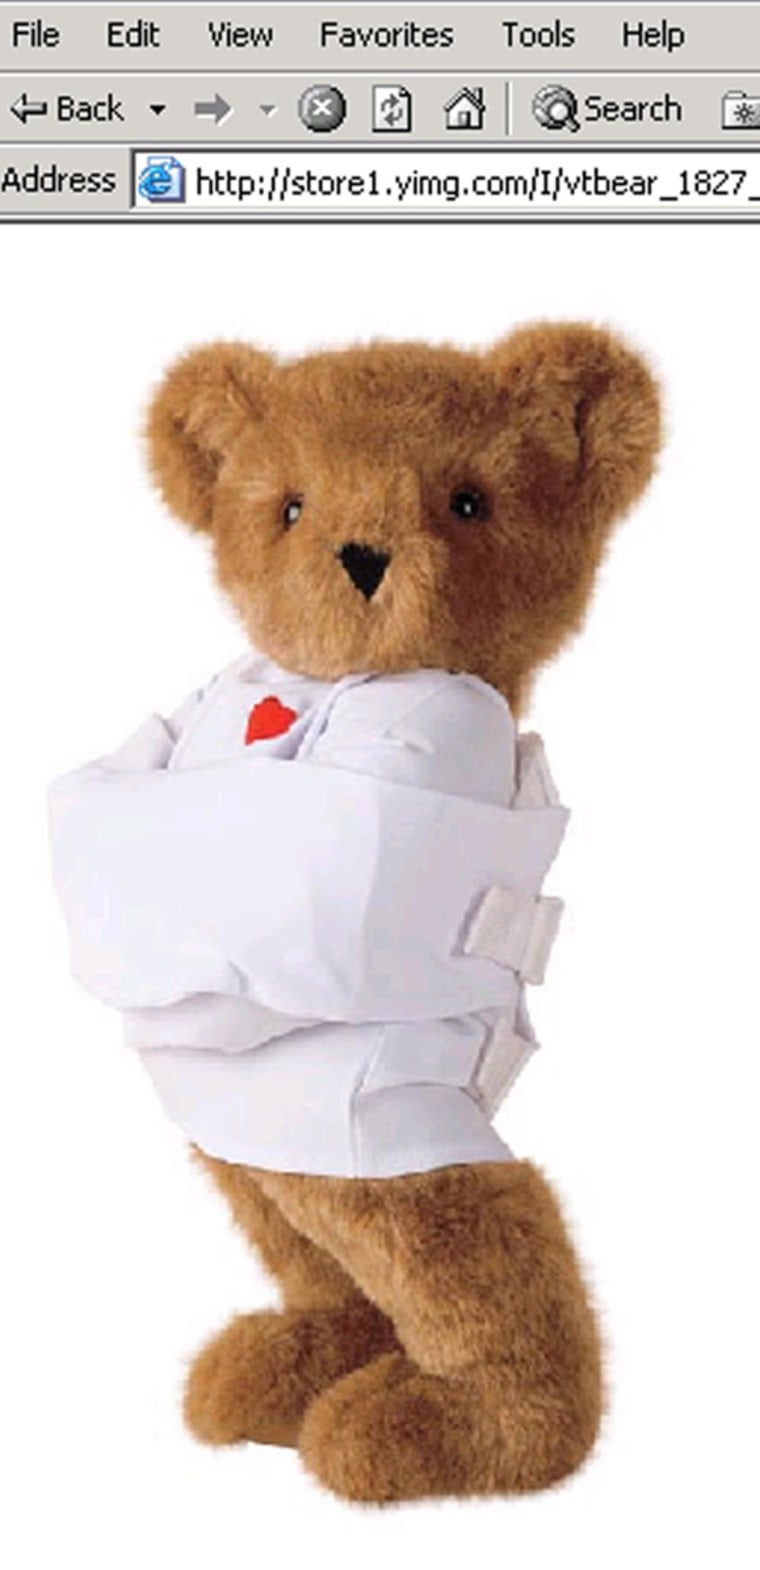 The 'Crazy for You Bear' comeswith commitment papers and is meant to convey out-of-control love.